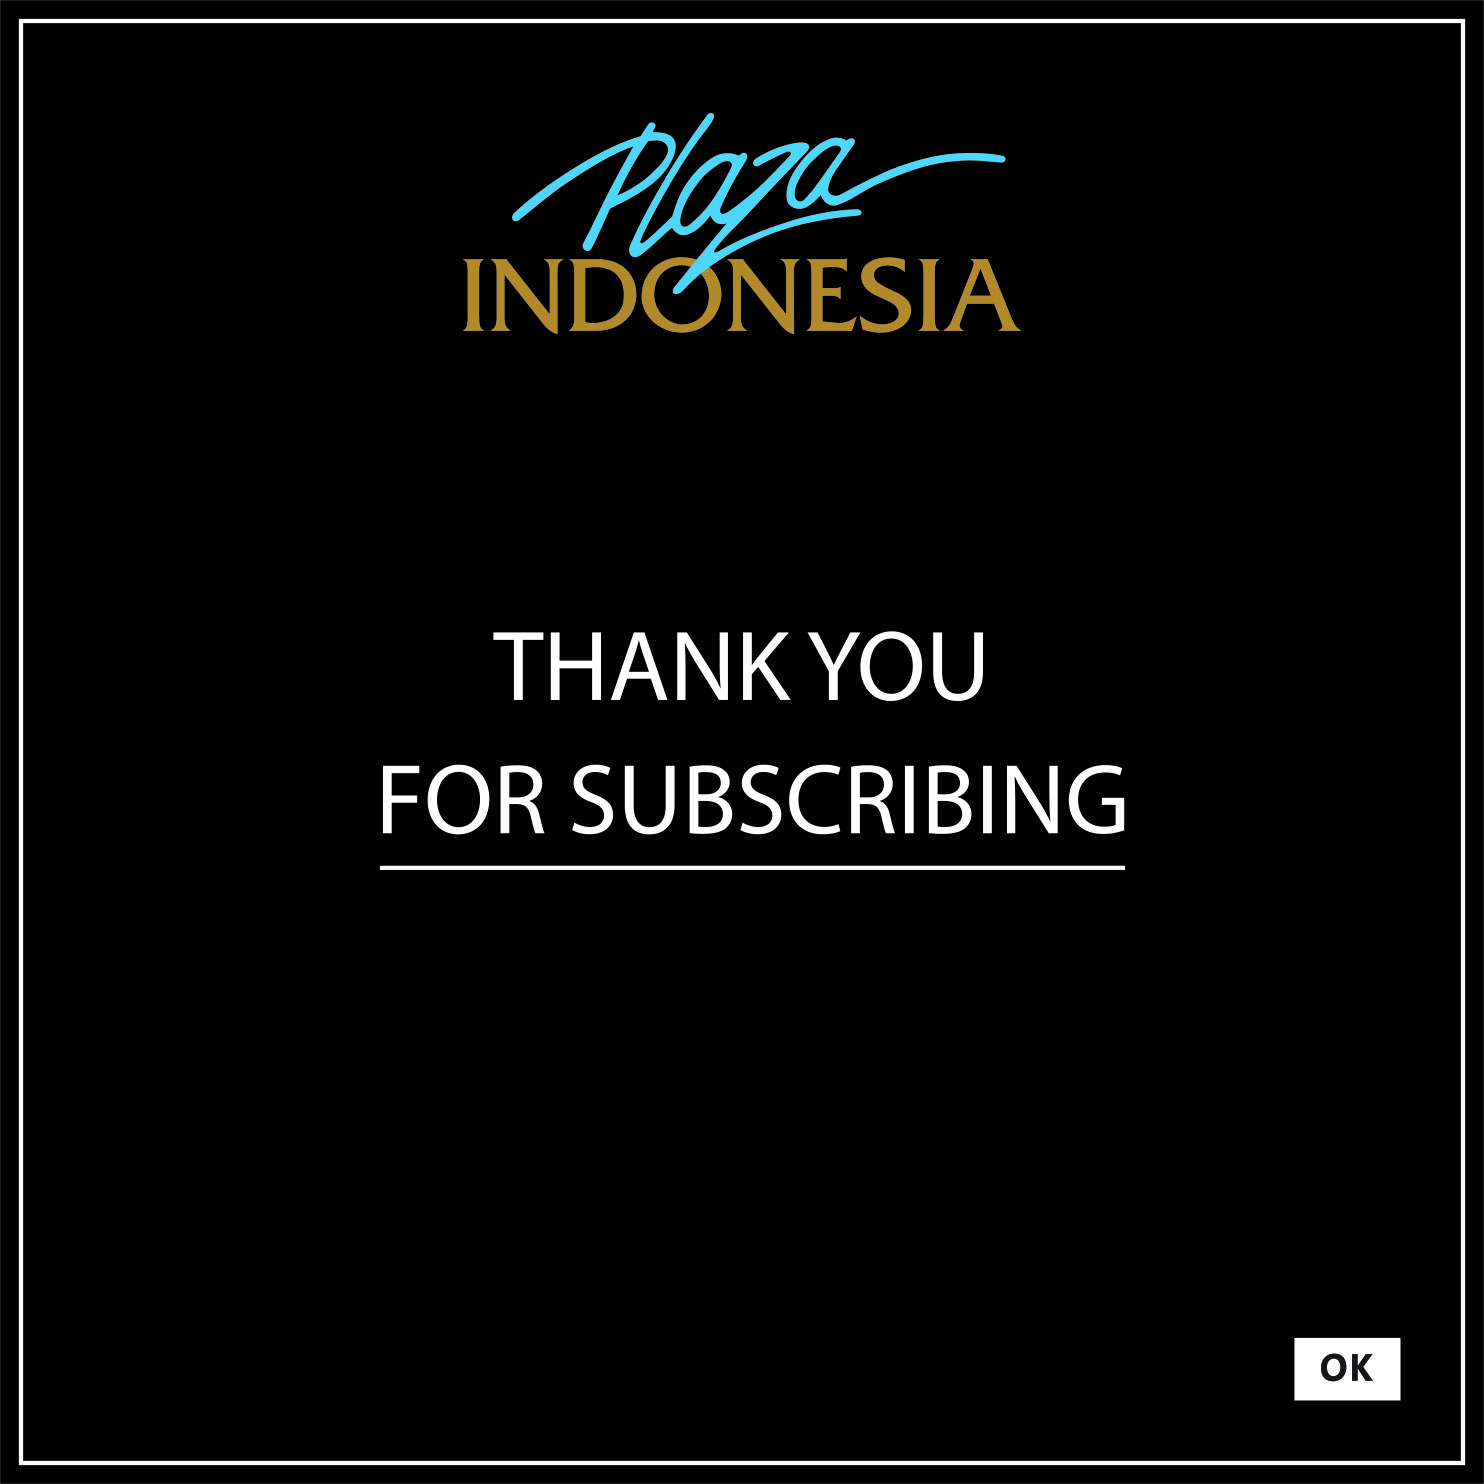 Plaza Indonesia Home Collection Voucher Map 100000 Bth Subscribe